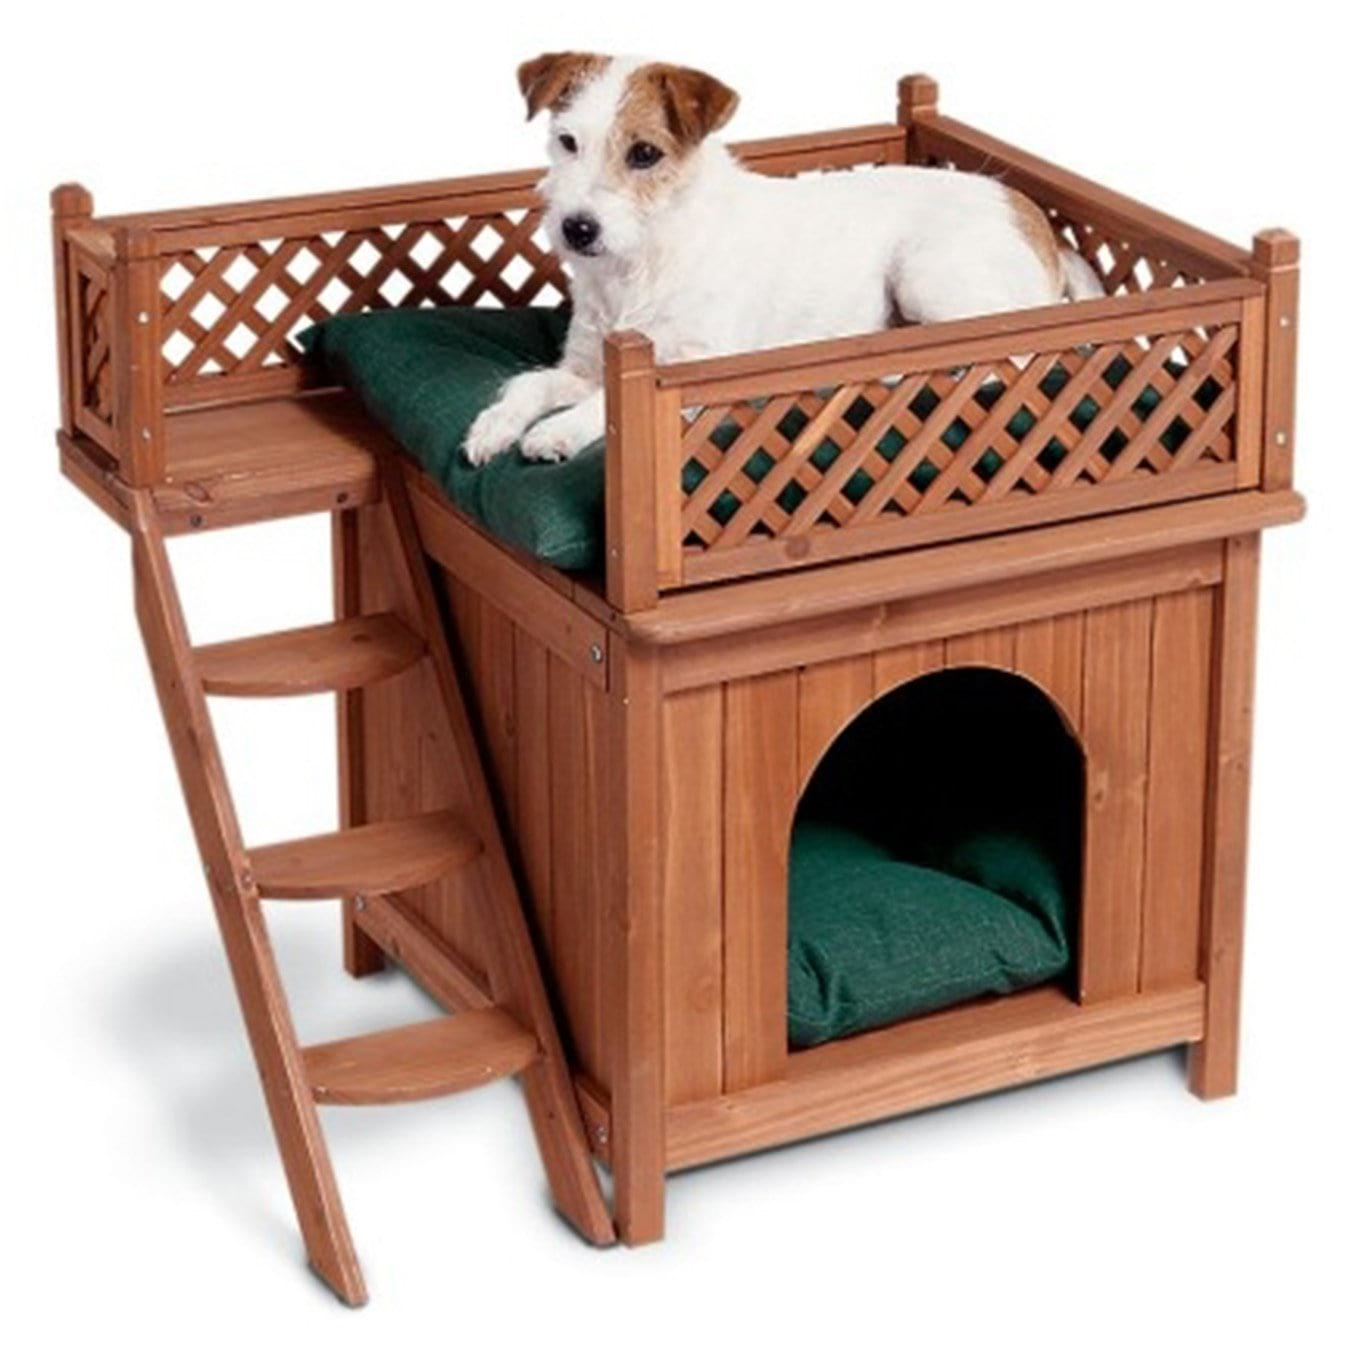 Wooden Dog House With Balcony For Medium And Small Pups Puppyfy Store